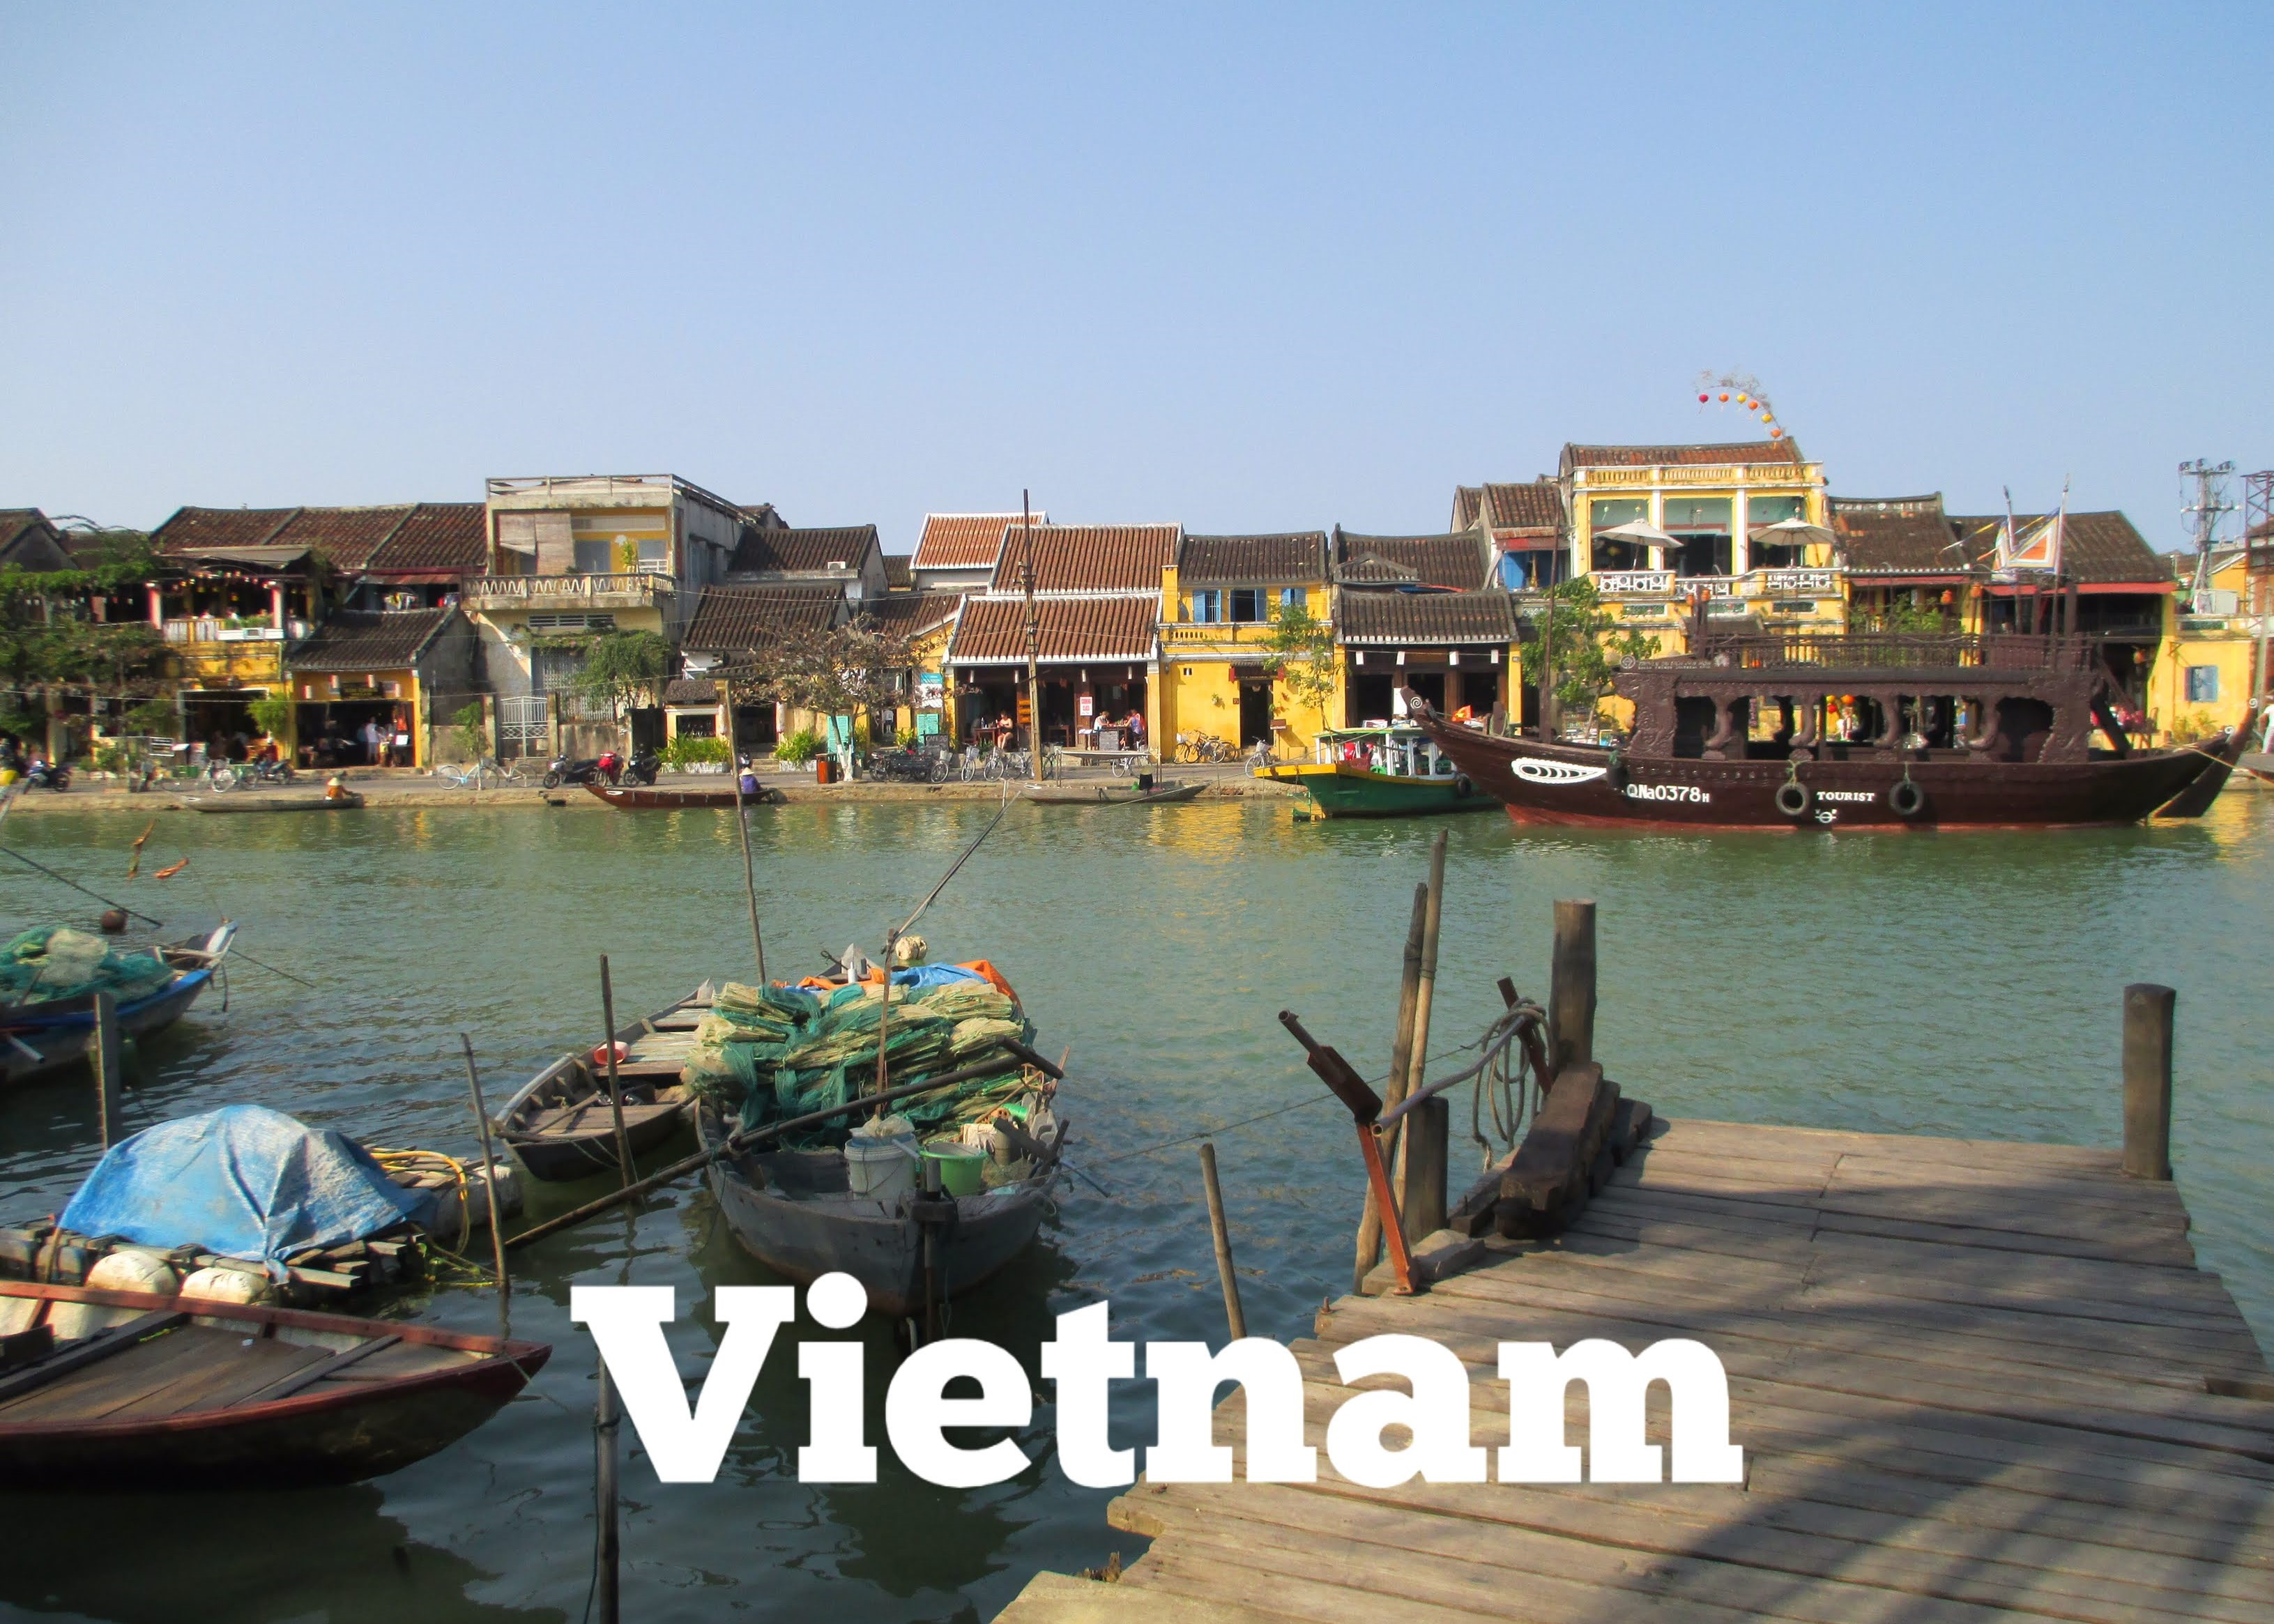 Vietnam, wanderdaze, blog, travelling, travel blog,